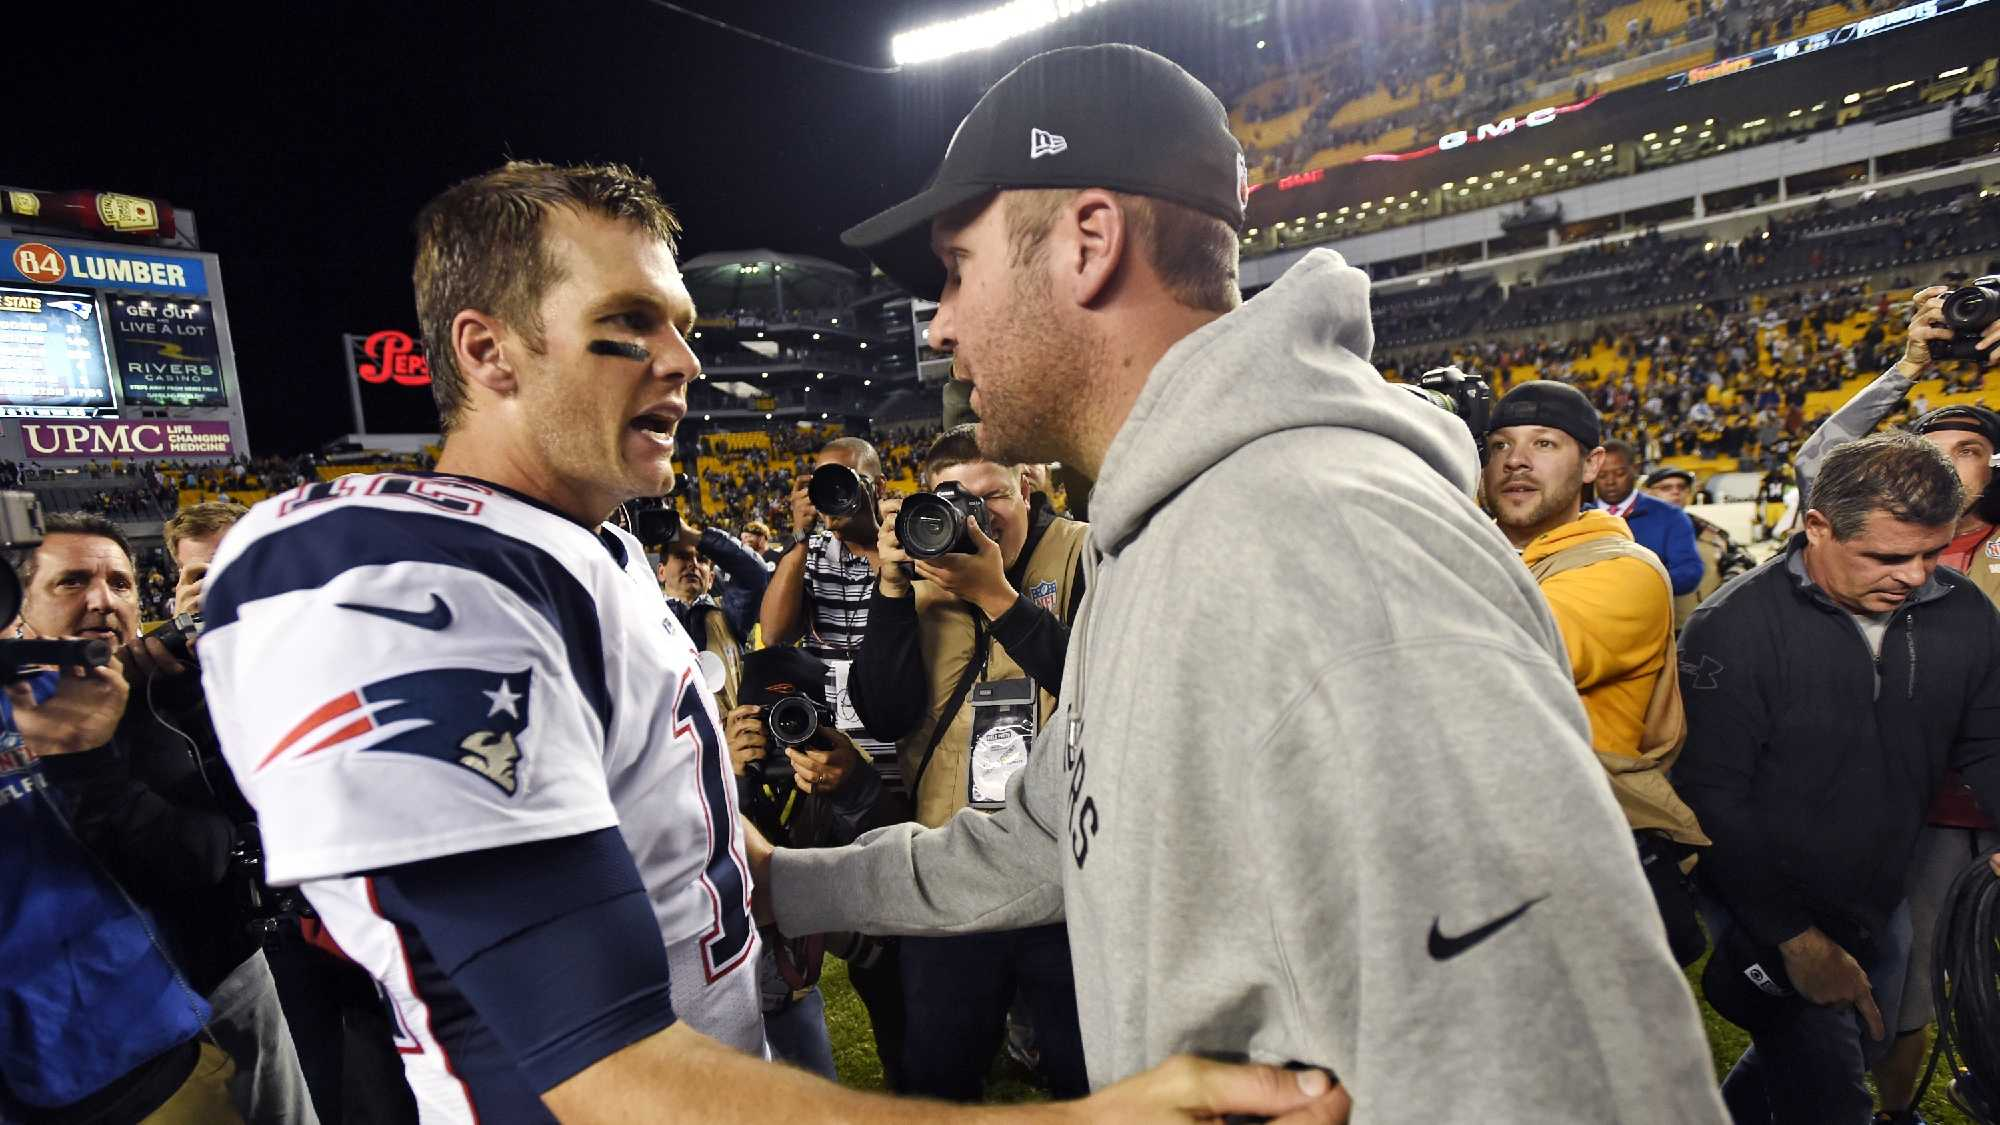 """FILE - In this Oct. 23, 2016, file photo, Pittsburgh Steelers quarterback Ben Roethlisberger, right, and New England Patriots quarterback Tom Brady, left, visit on the field after an NFL football game in Pittsburgh. A clip from Showtime's """"Inside the NFL"""" captured a conversation between the quarterbacks before the game that shows Roethlisberger asking for Brady's jersey."""